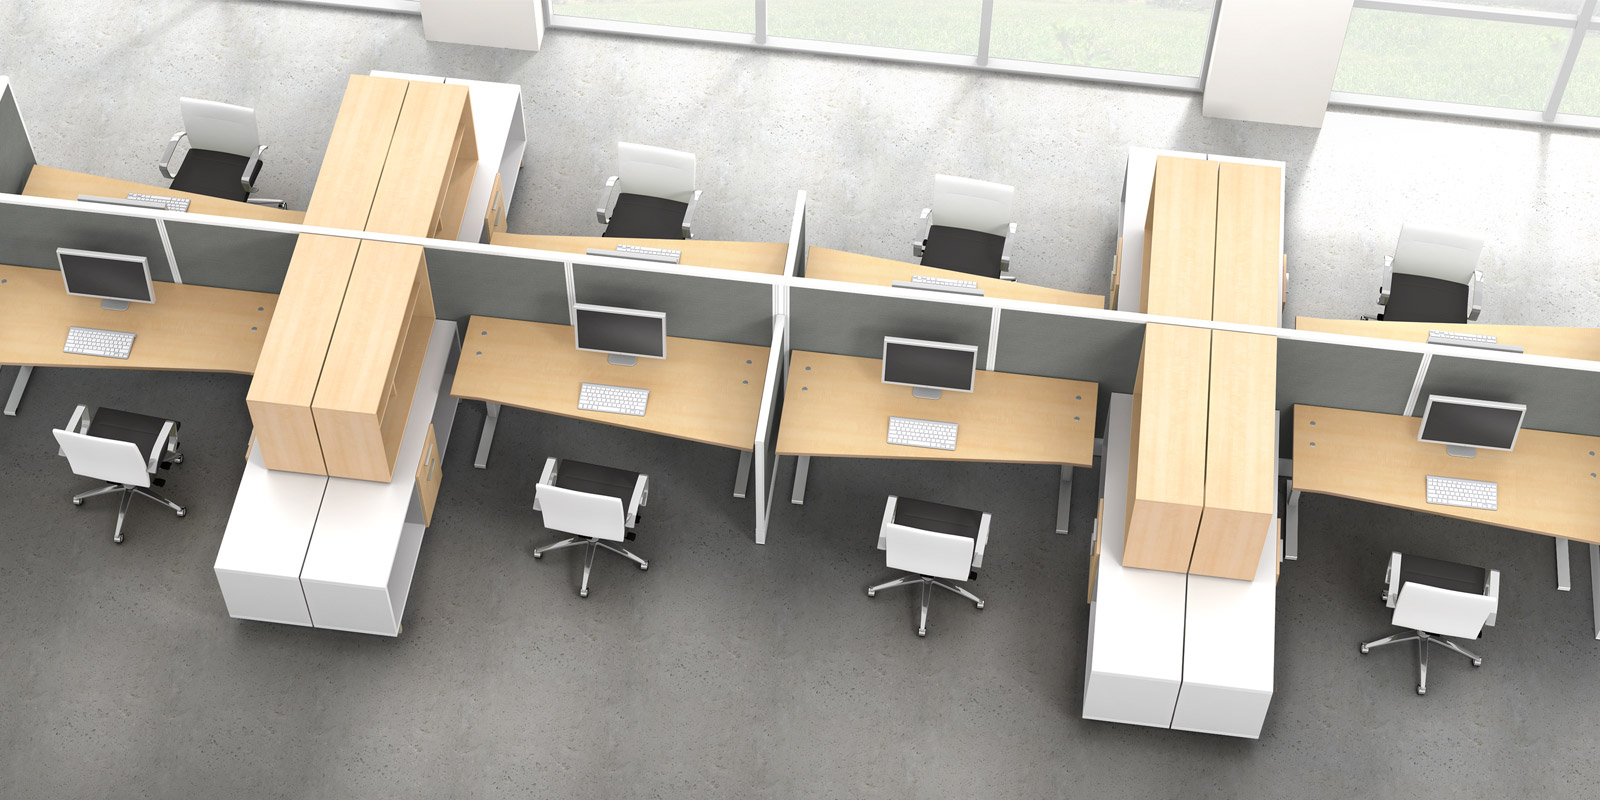 Watson Seven Open Office Design